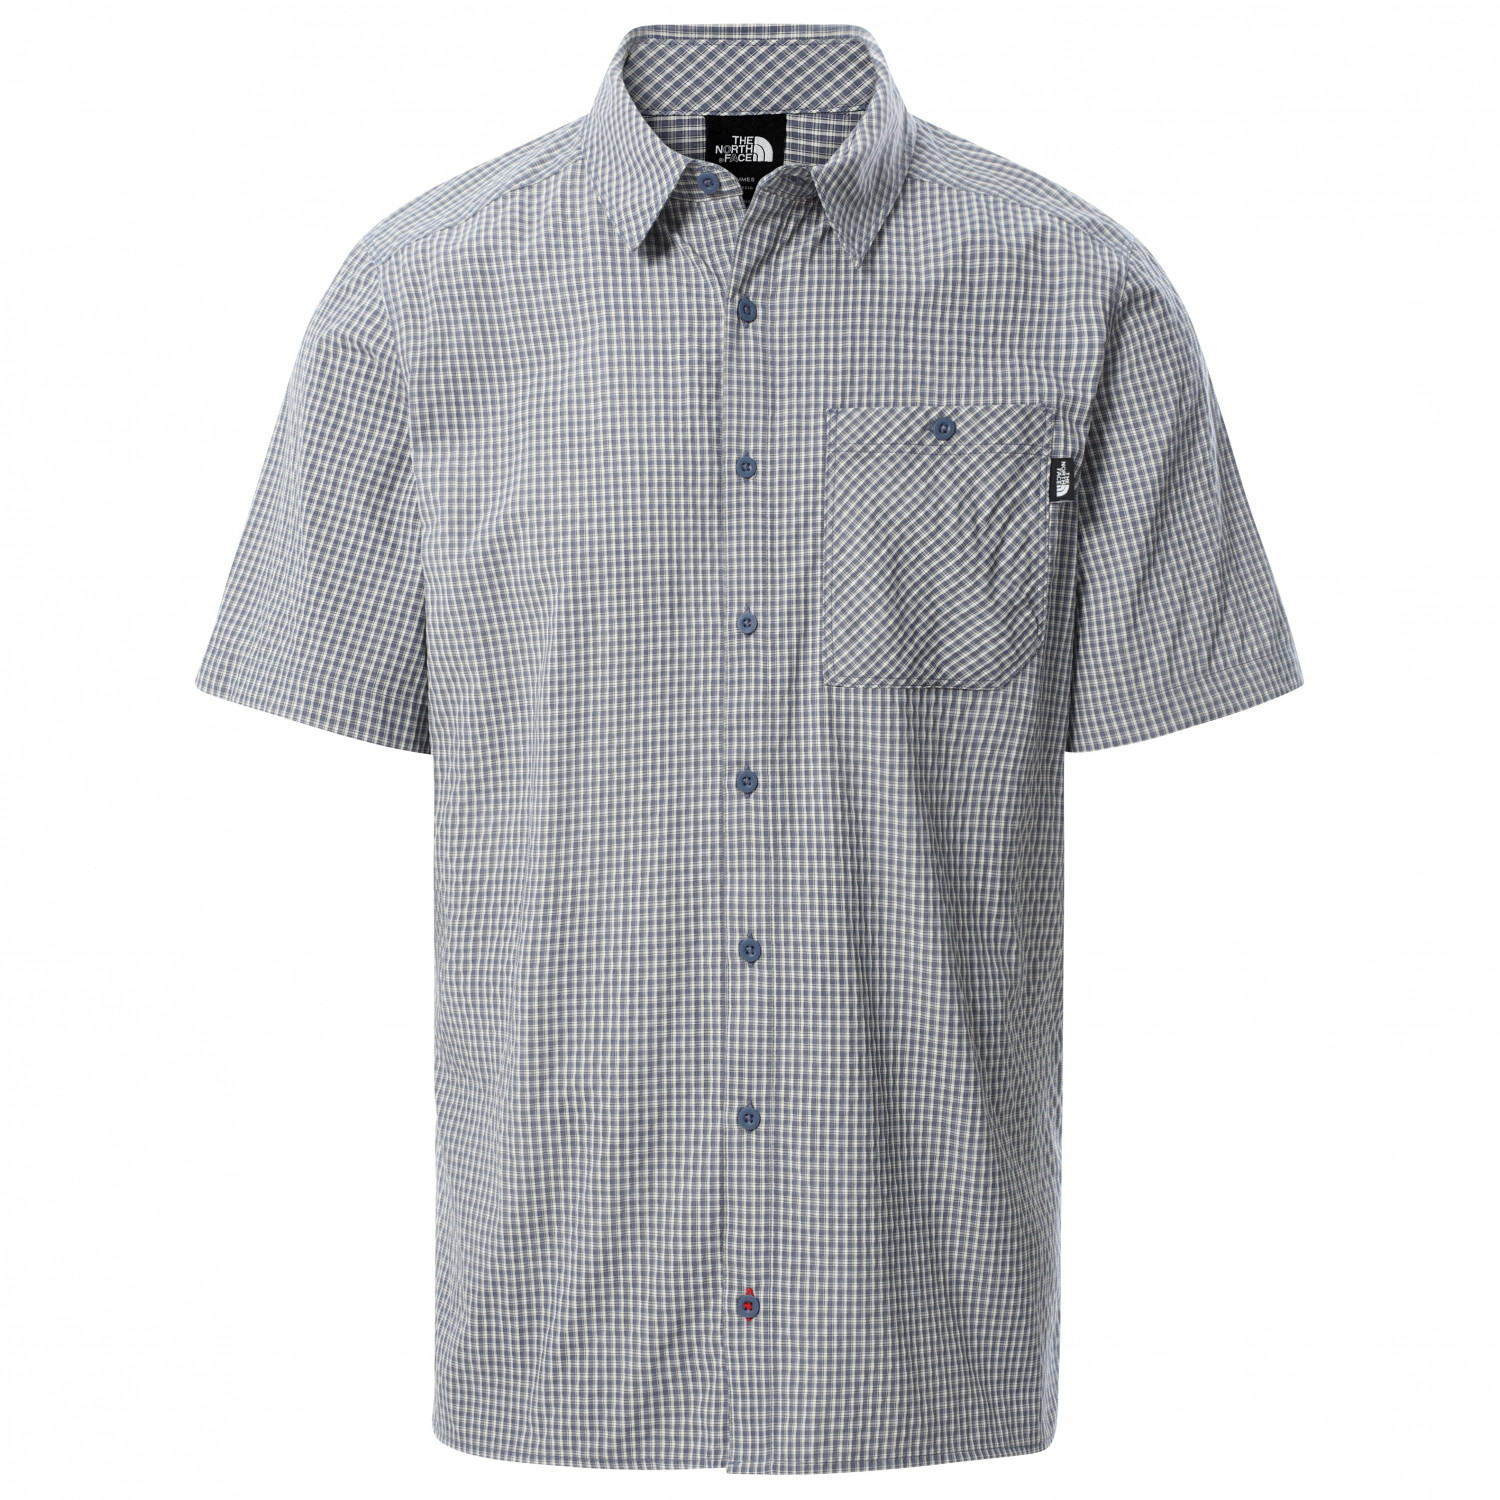 b4558ecad501 the-north-face-s-s-hypress-shirt-chemise.jpg